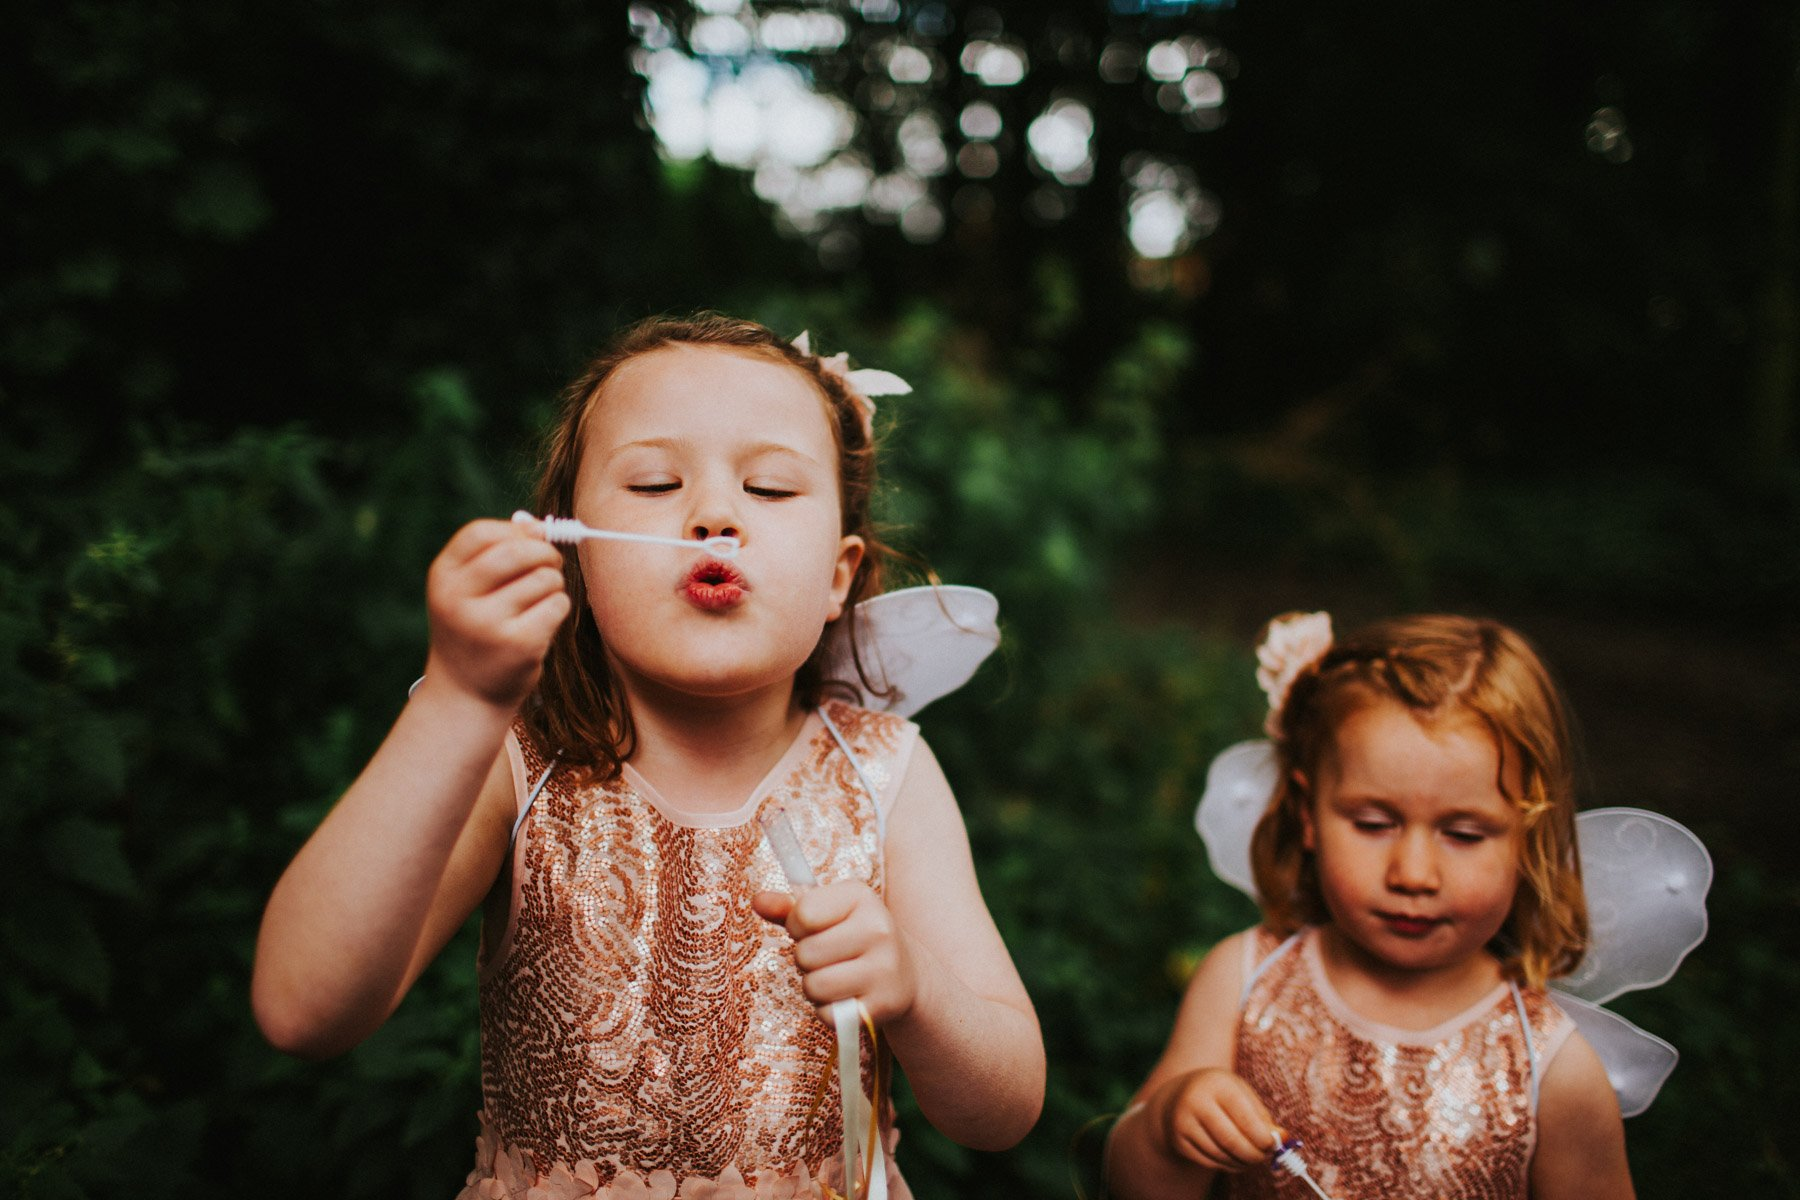 Newcastle Wedding Photographer - Flower Girls blow bubbles at Summerhill Bowling Club Wedding